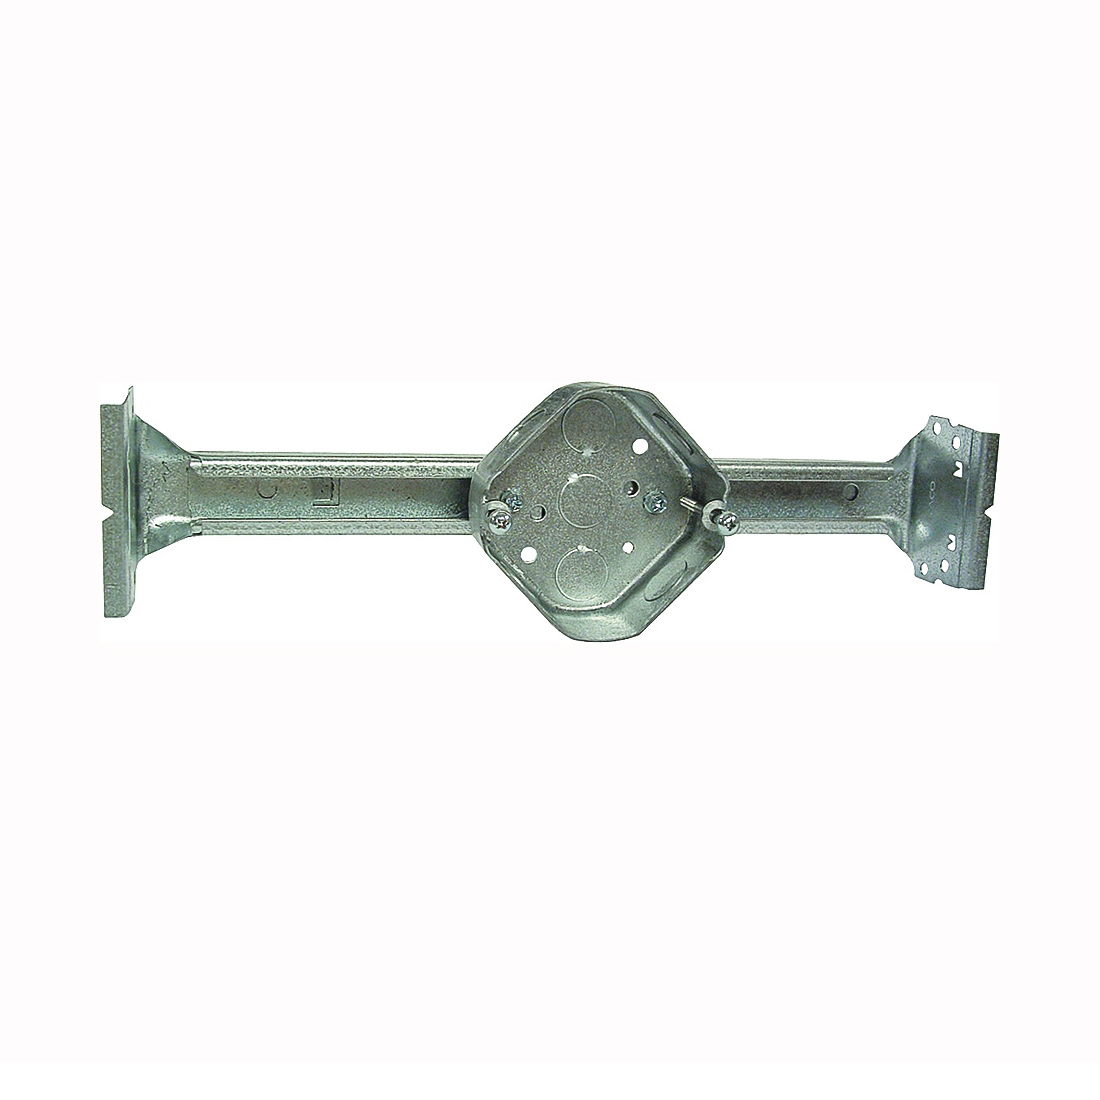 Picture of RACO 926 Ceiling Box, 4 in W, 1-1/2 in D, 4-1/4 in H, 1-Gang, 3-Knockout, Steel, Silver